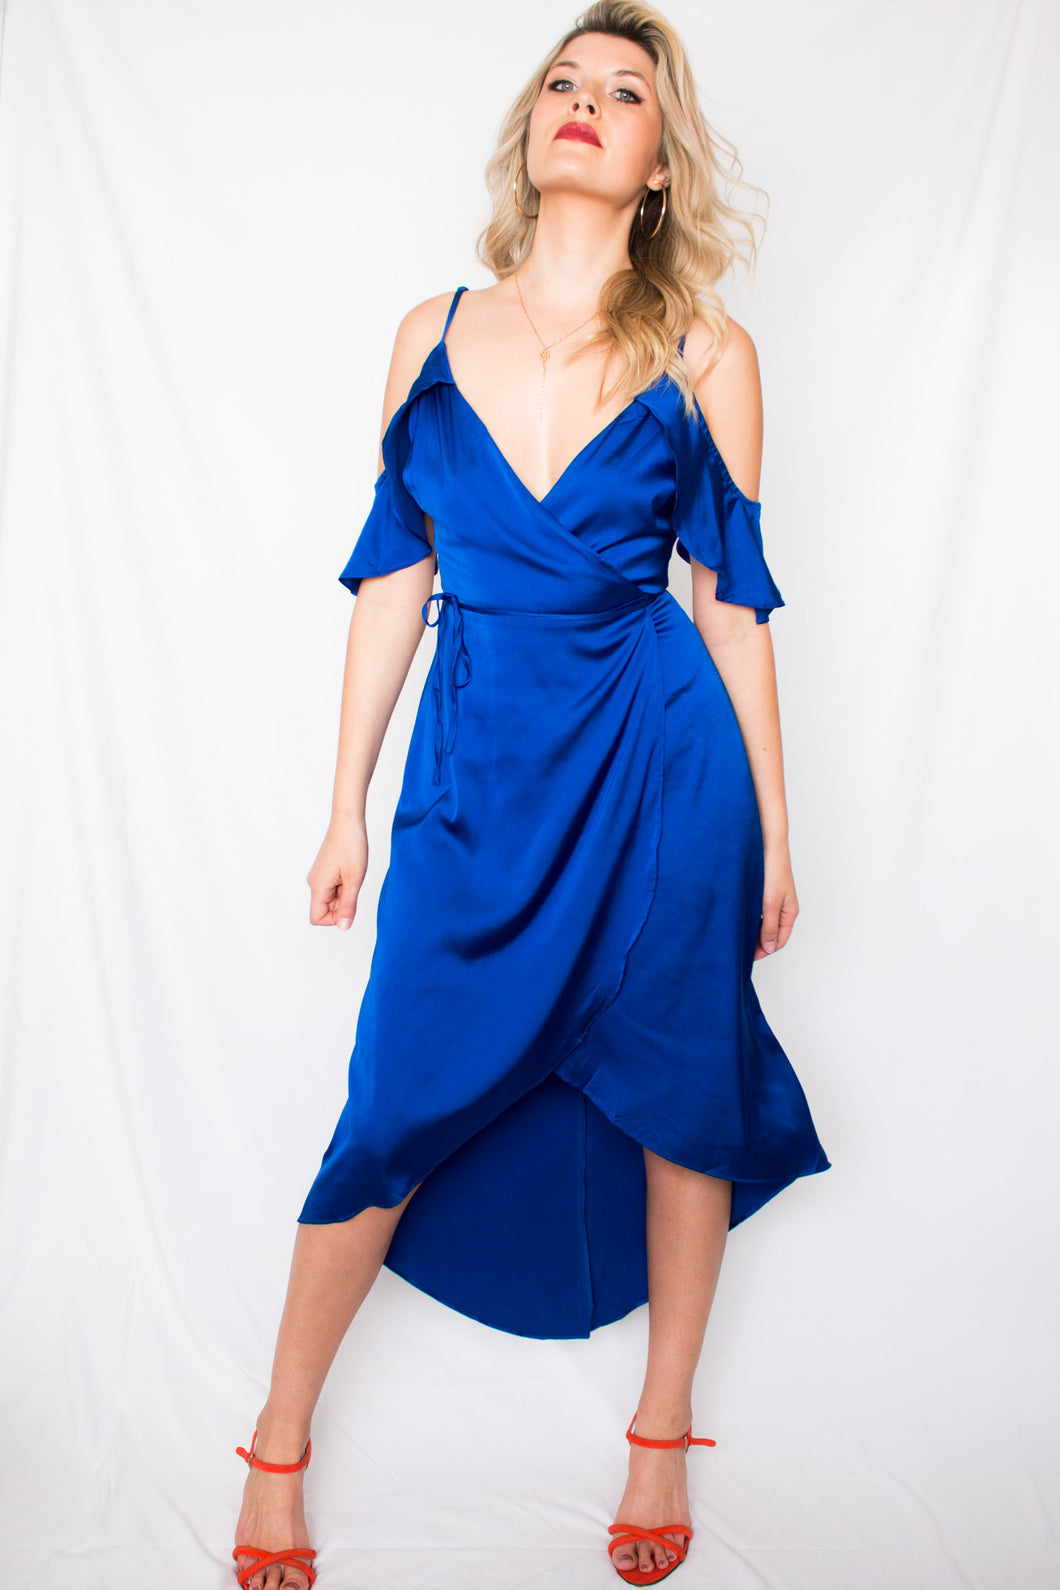 Santorini Dress - Finding July